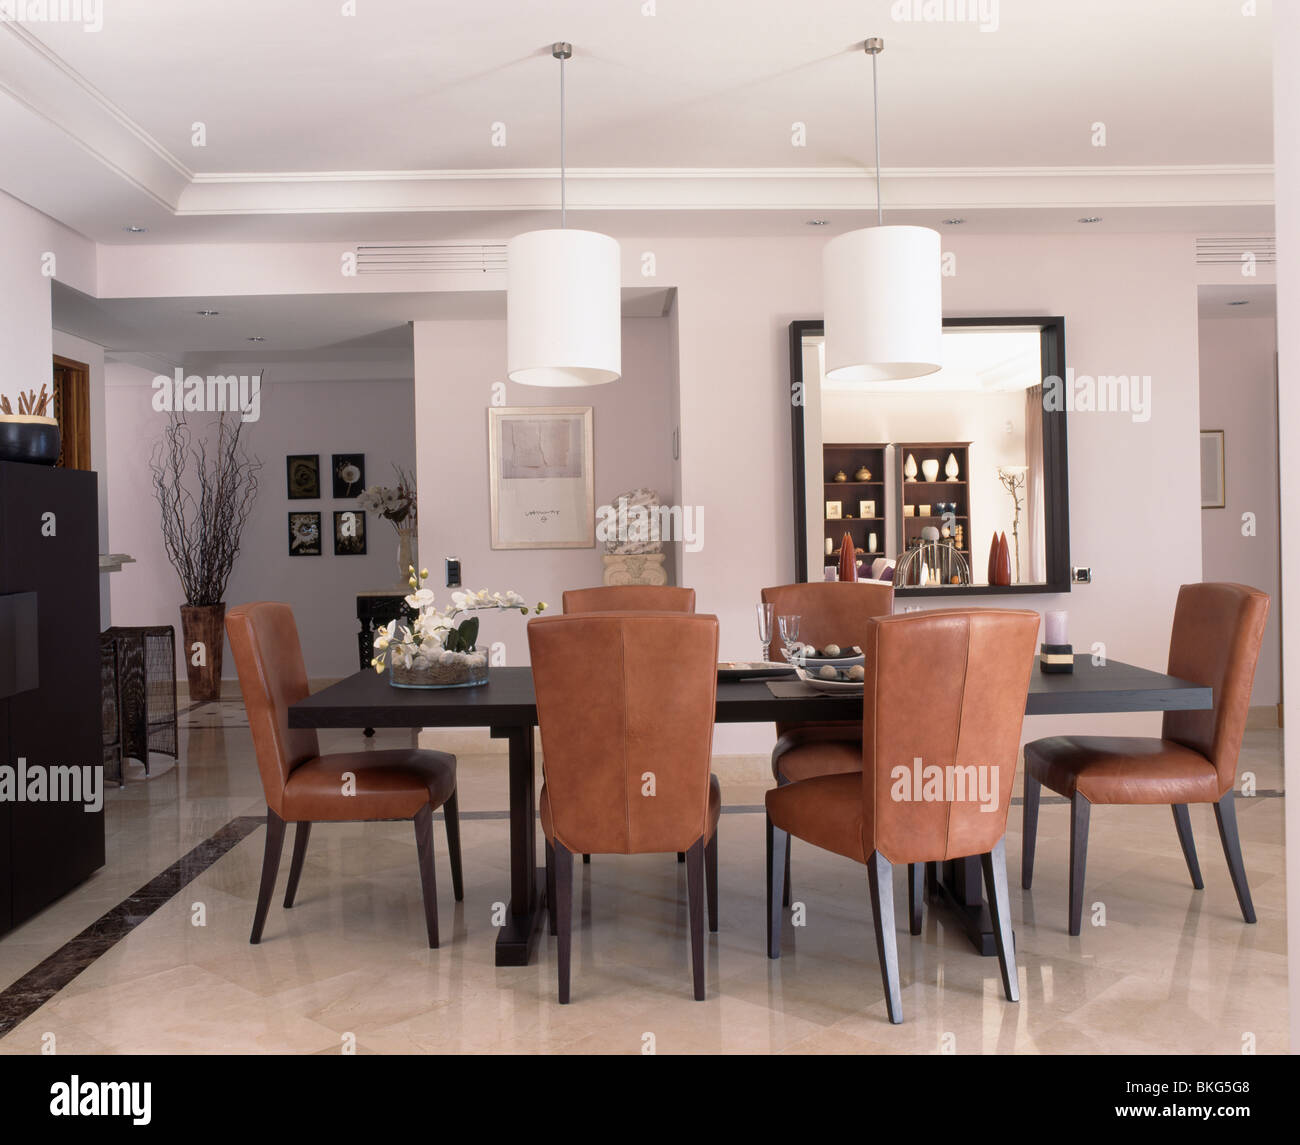 upholstered tan leather chairs at table in modern white dining room BKG5G8